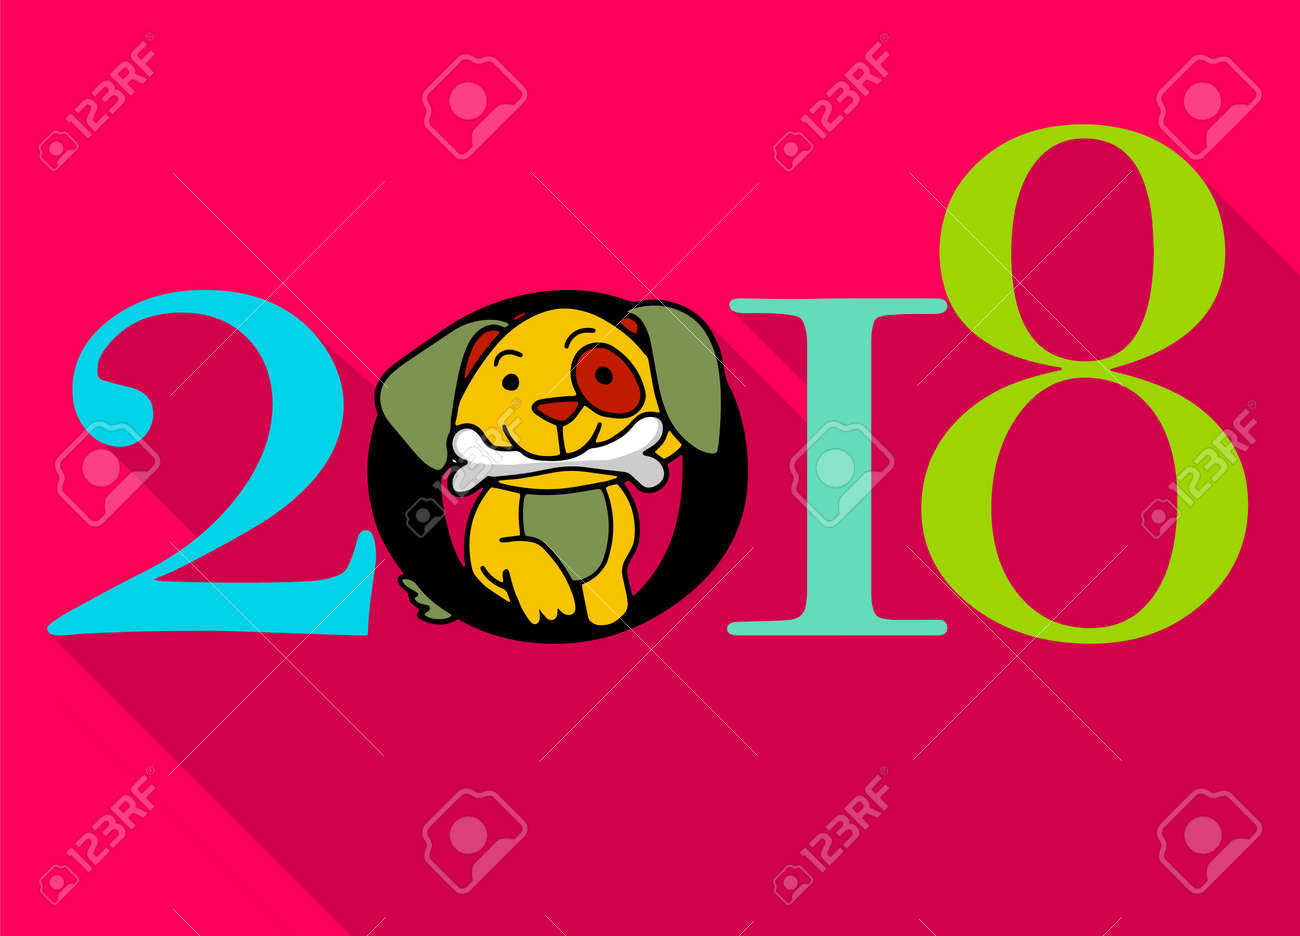 2018 happy new year greeting card celebration background with dog 2018 chinese new year